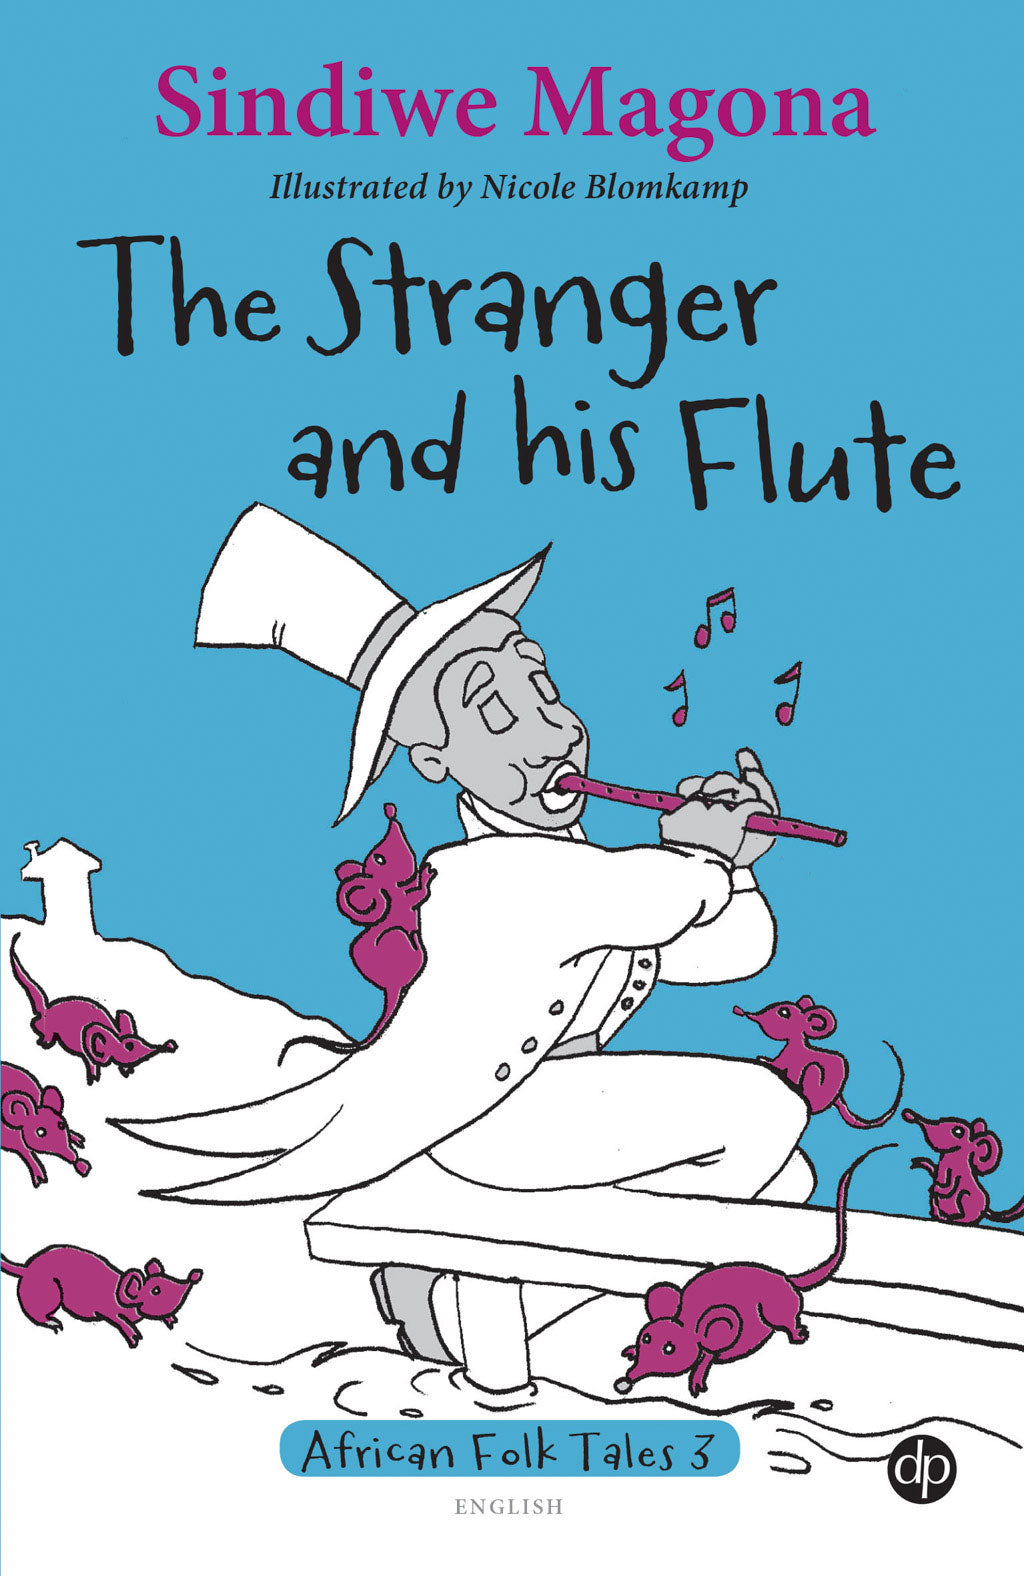 THE STRANGER AND HIS FLUTE - Folk Tale 3